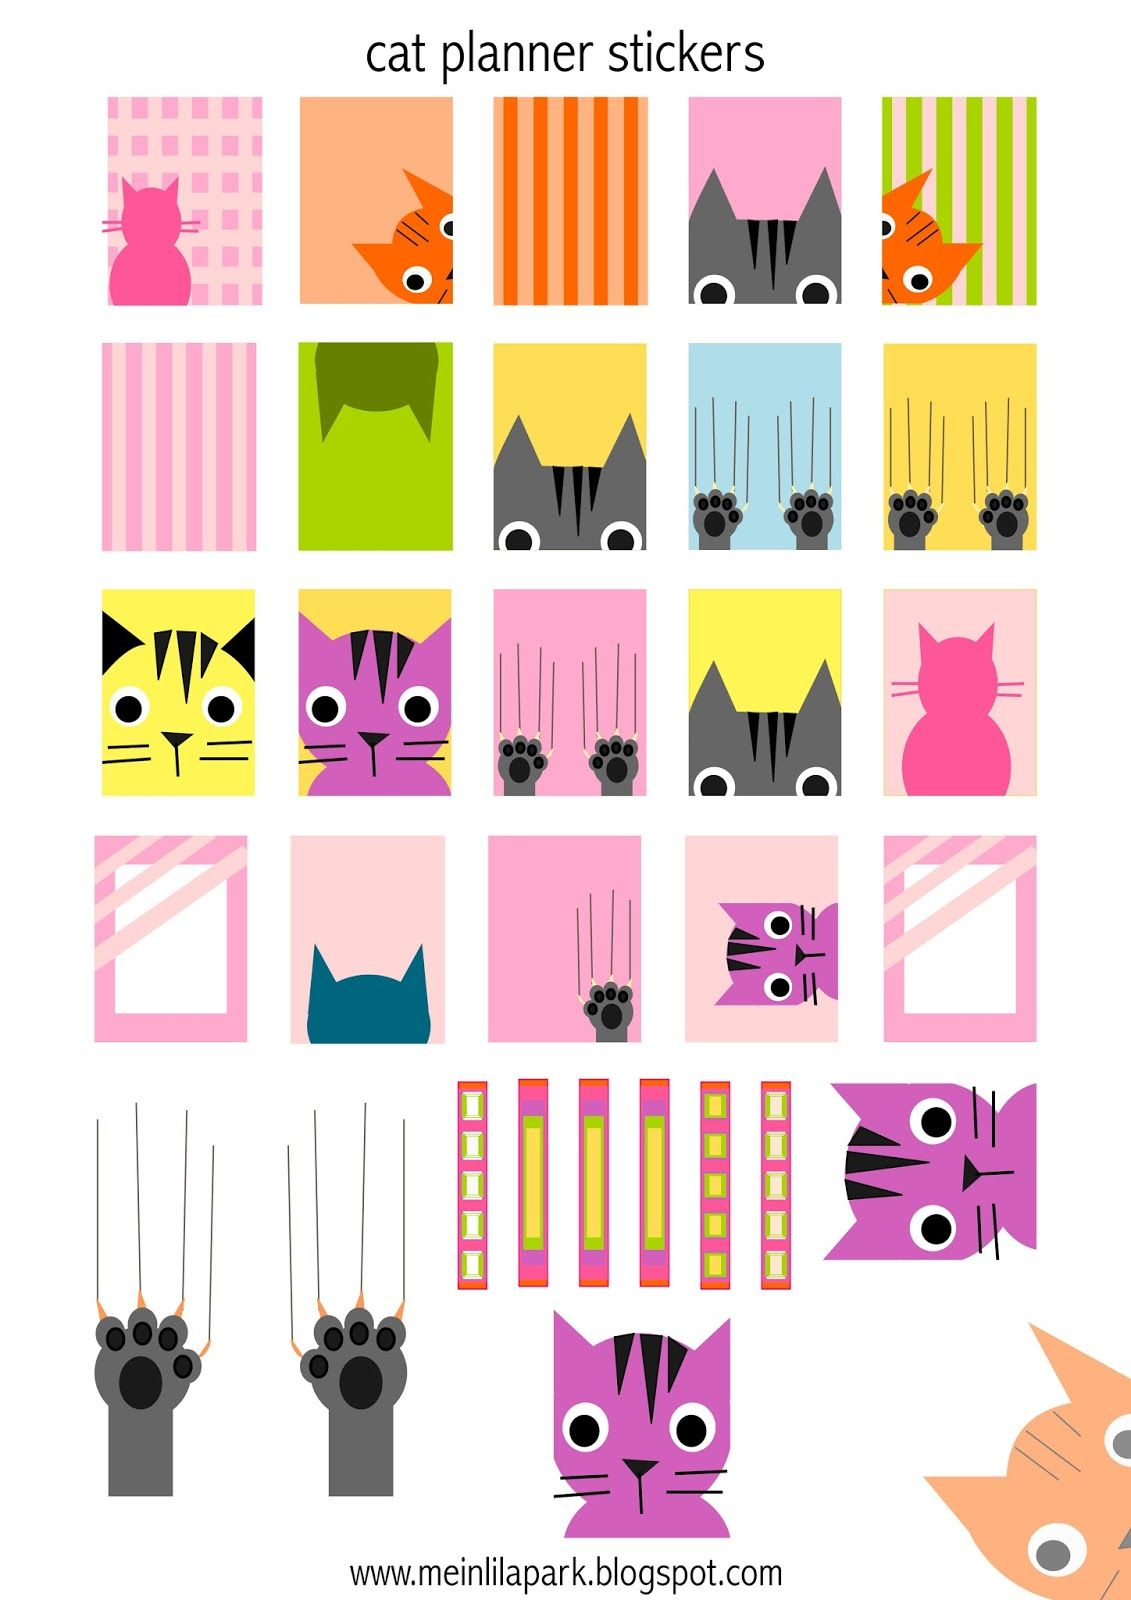 graphic about Printable Stickers Free referred to as Free of charge printable cat planner stickers - Agendasticker